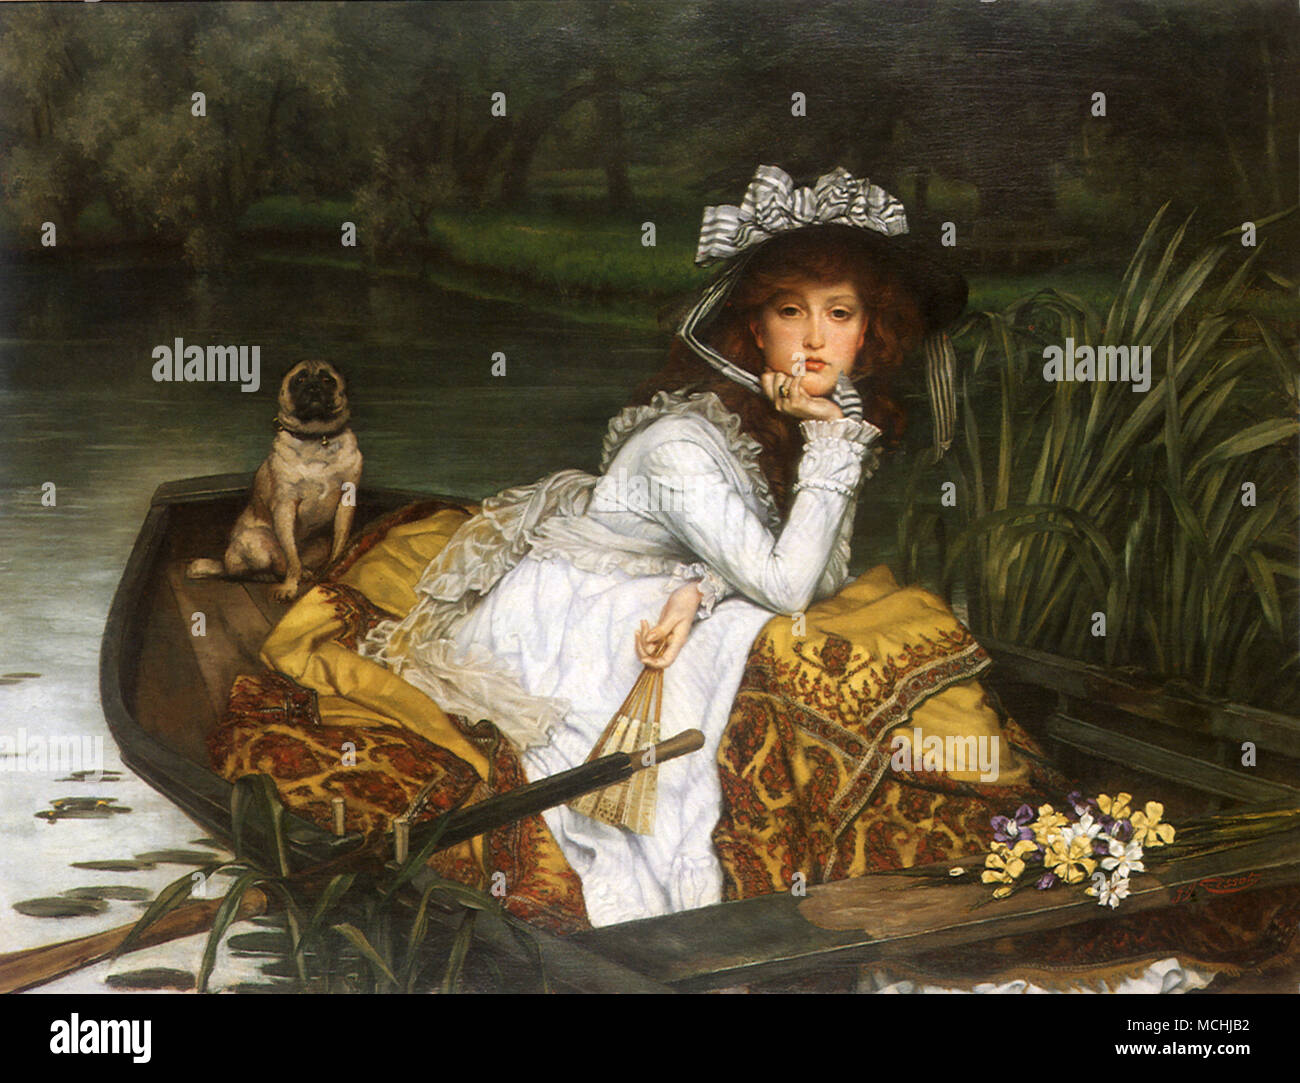 Young Lady in a Boat (Jeune Fille en Bateau) - Stock Image